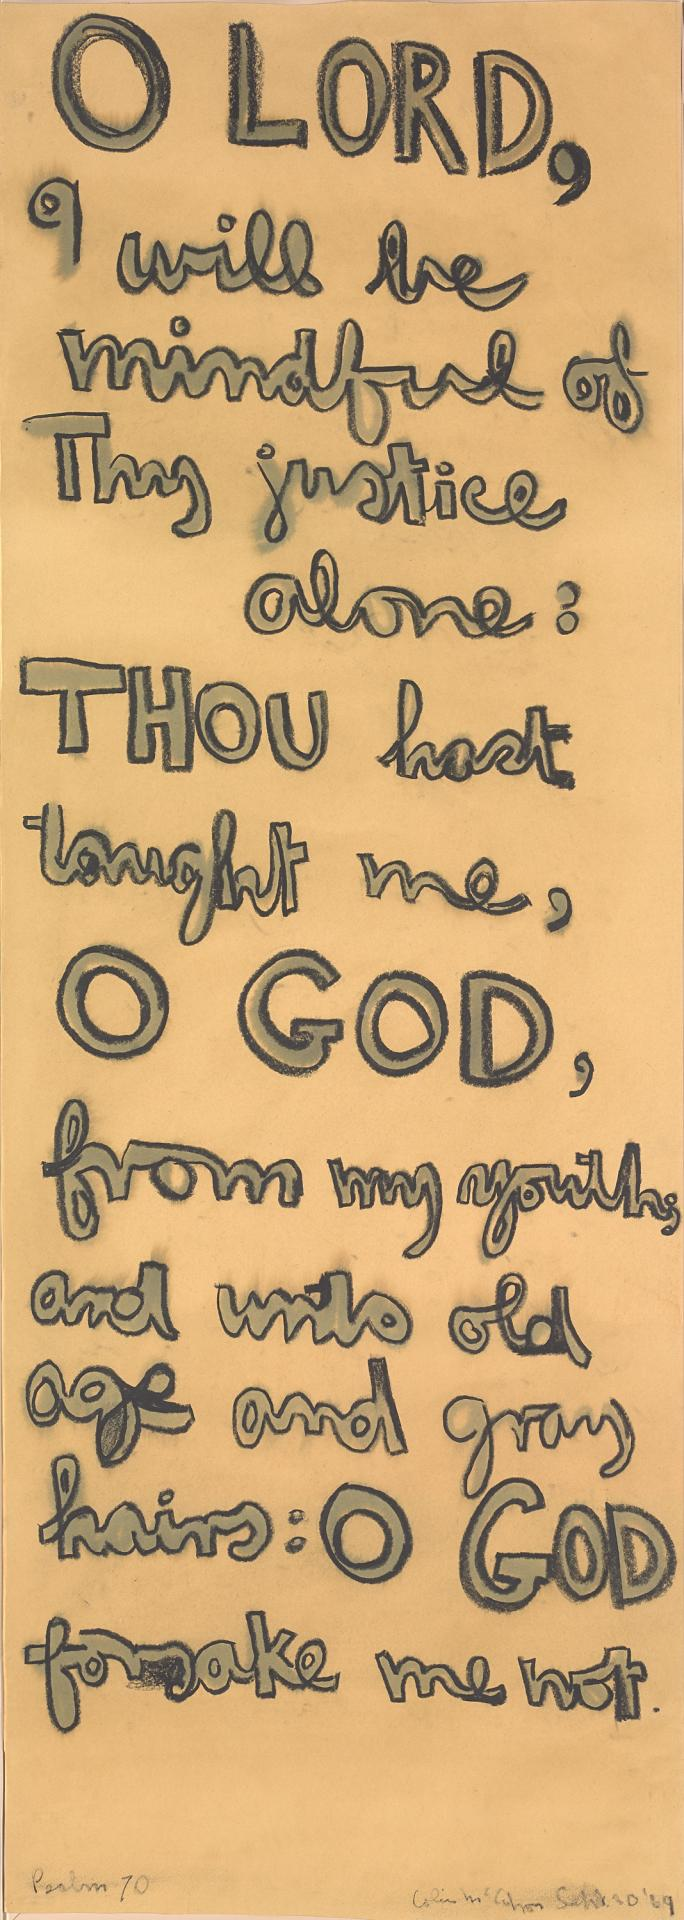 O Lord I will be mindful ... (Psalm 70)